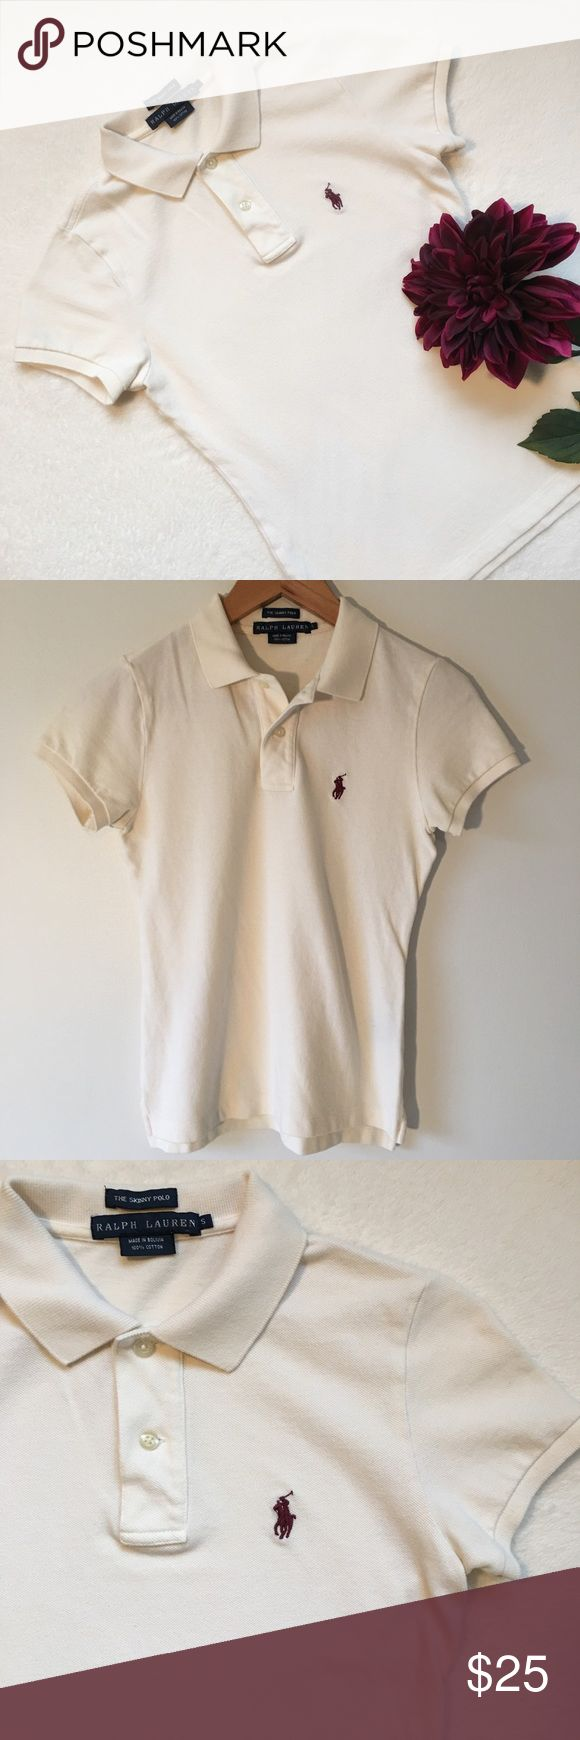 "{Ralph Lauren} The Skinny Polo Ralph Lauren The Skinny Polo. A body-conscious silhouette without any stretch. Ribbed polo collar. Two-button placket. Short sleeves with ribbed armbands. Tennis tail. Signature embroidered pony (in burgundy) at the left chest. 100% cotton. 16"" pit to pit. 22"" shoulder to bottom of hem. Good preloved condition. (Photo 4 represents style and fit in a different color). Ralph Lauren Tops"